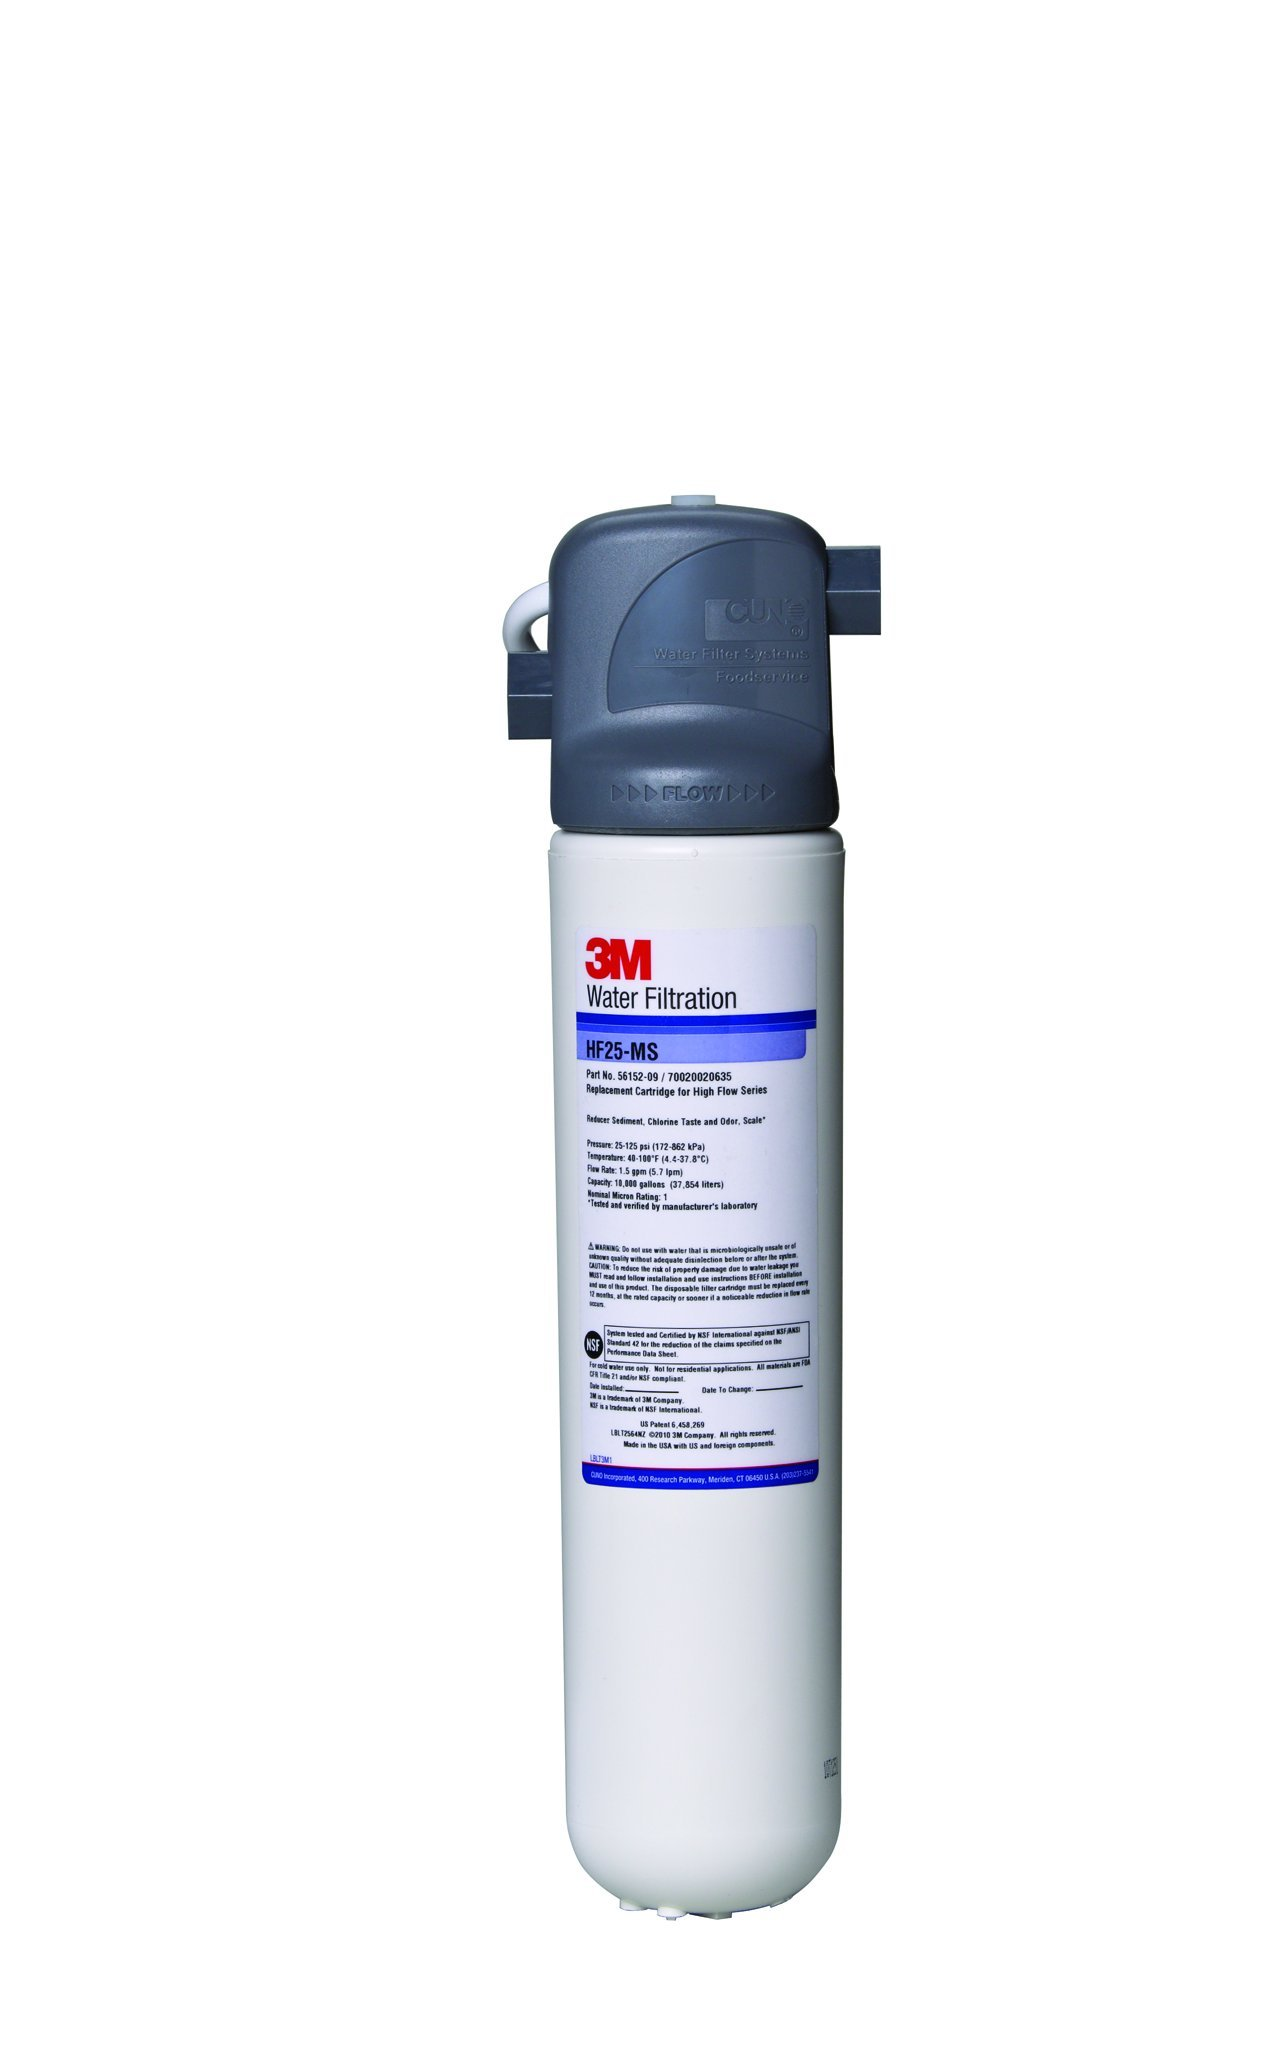 3M Purification-Food Service BREW125-MS 5616002 Filtration System, Water Filtration Products